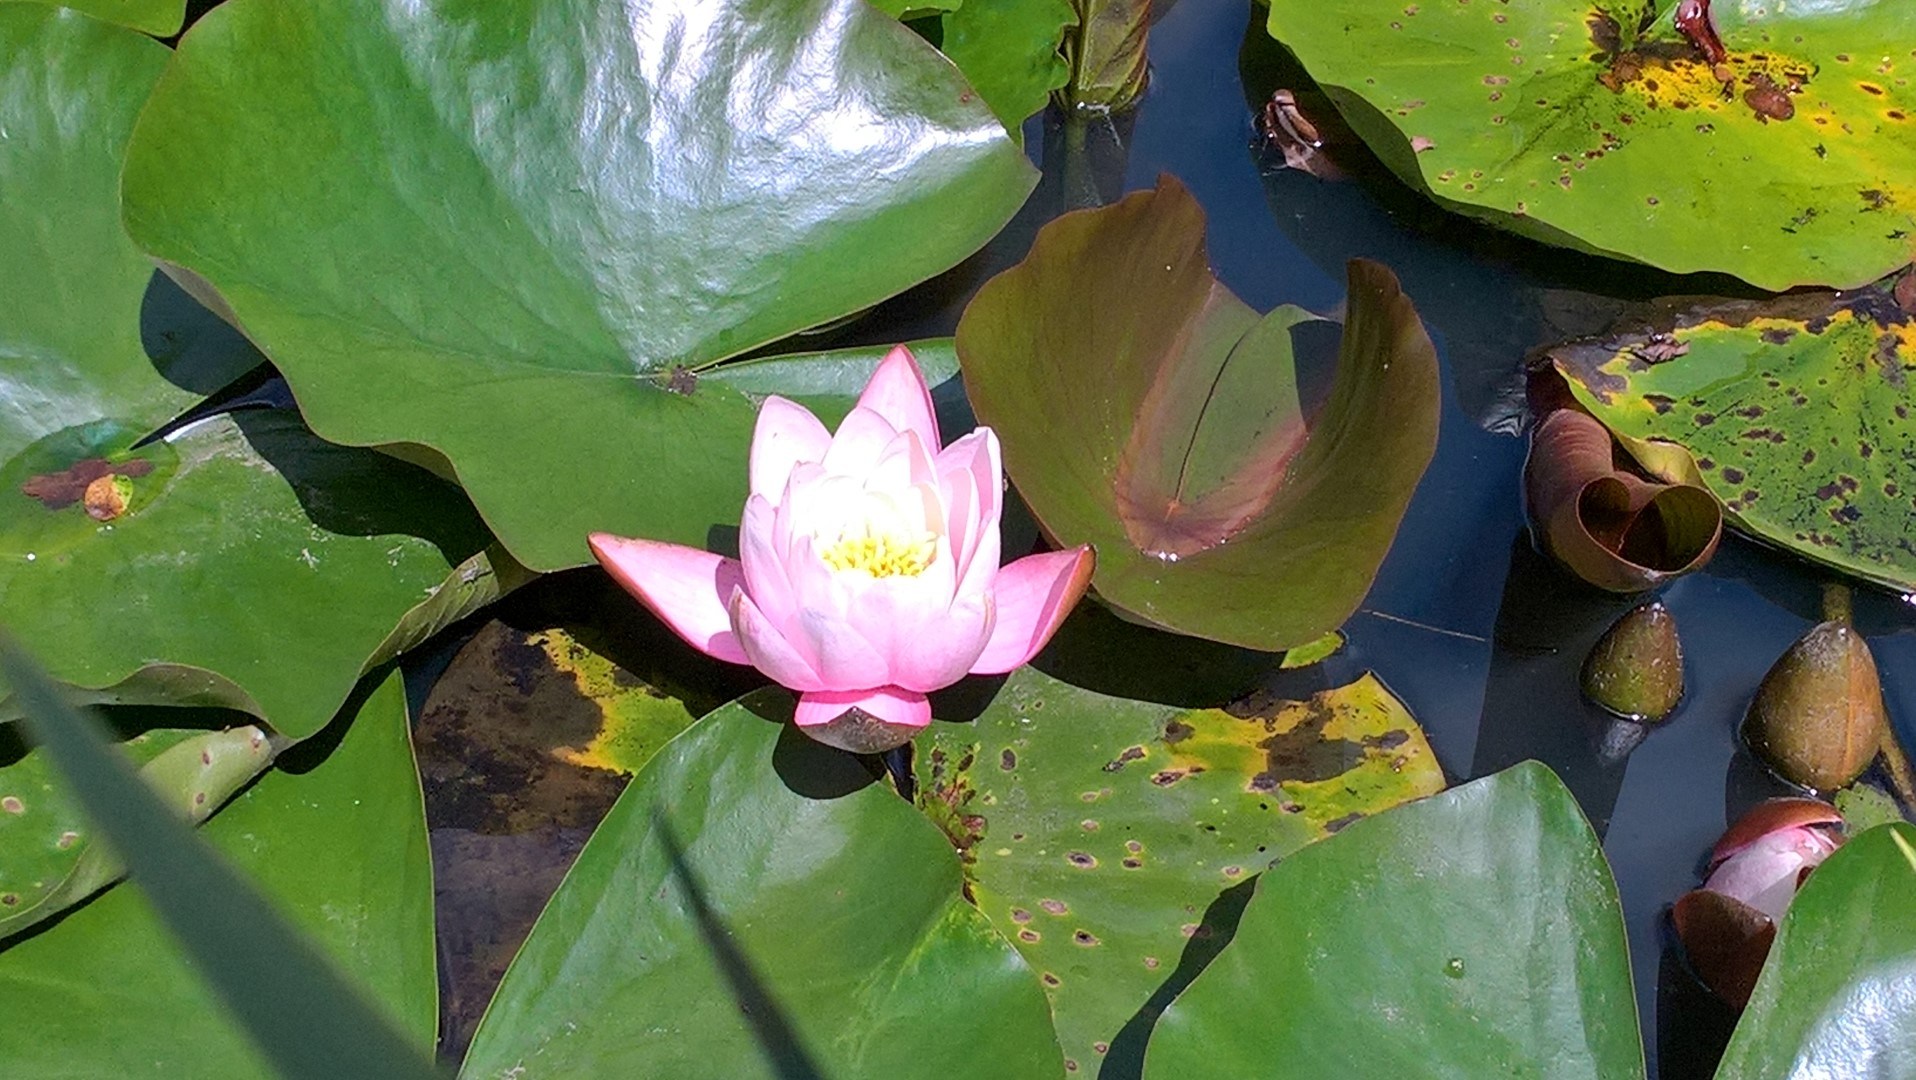 The gorgeous lily pads